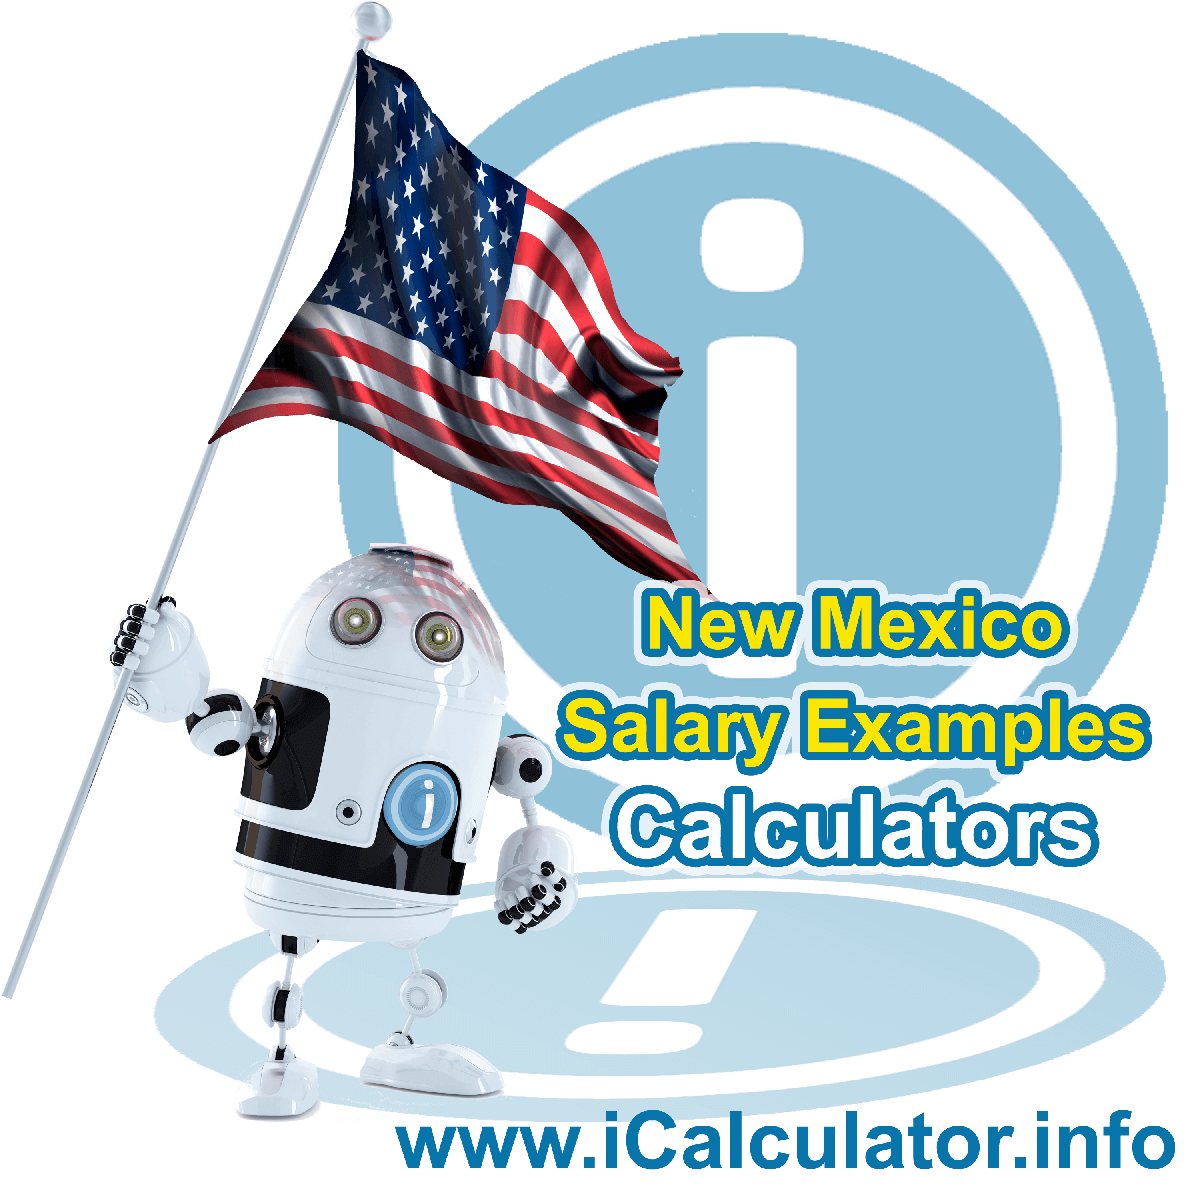 New Mexico Salary Example for $230.00 in 2020 | iCalculator | $230.00 salary example for employee and employer paying New Mexico State tincome taxes. Detailed salary after tax calculation including New Mexico State Tax, Federal State Tax, Medicare Deductions, Social Security, Capital Gains and other income tax and salary deductions complete with supporting New Mexico state tax tables